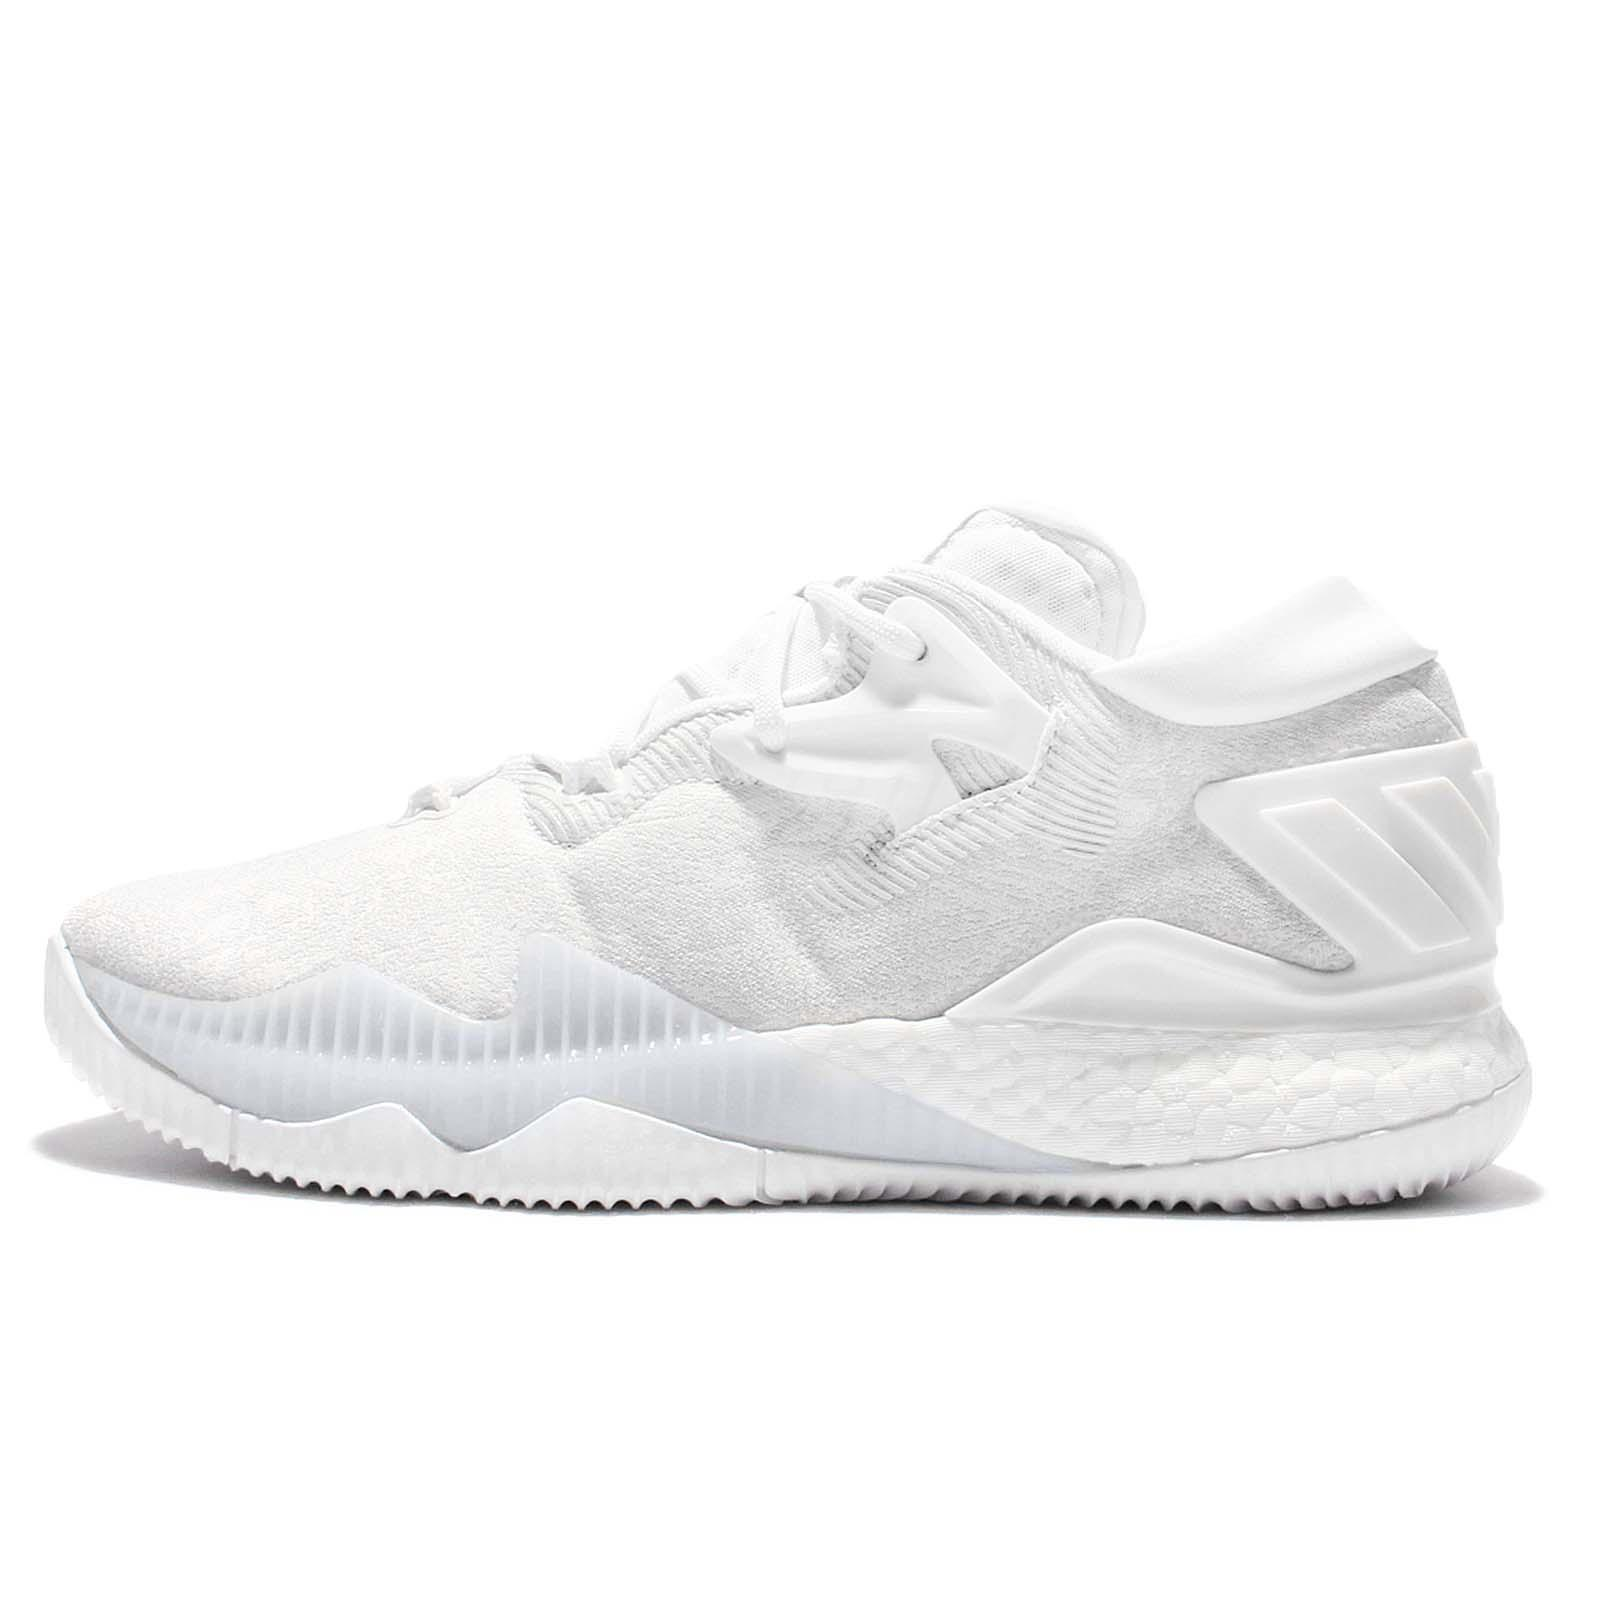 Adidas crazylight boost low 2016 bred black red mens basketball shoes - Adidas Crazylight Boost Low 2016 Triple White Jeremy Lin Mens Basketball B42425